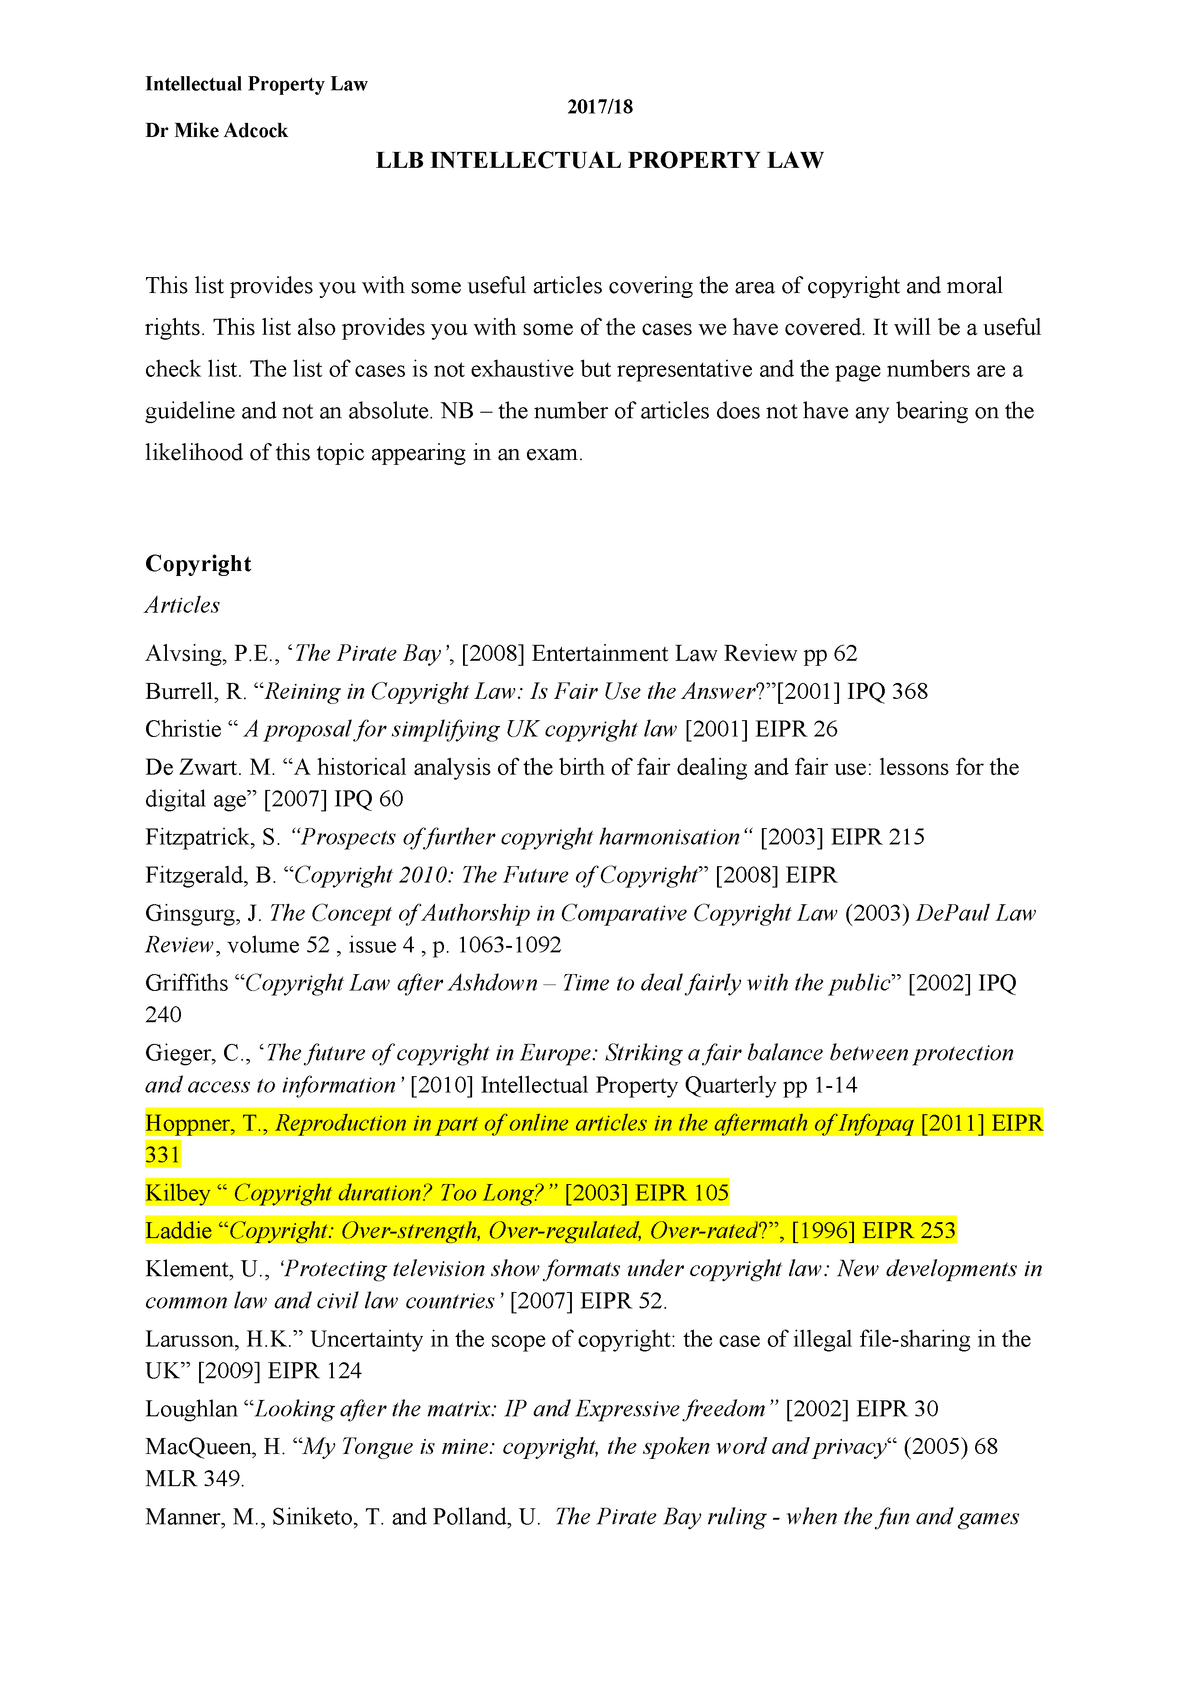 Detailed Copyright Notes, with case law - LAW3061 - DUR